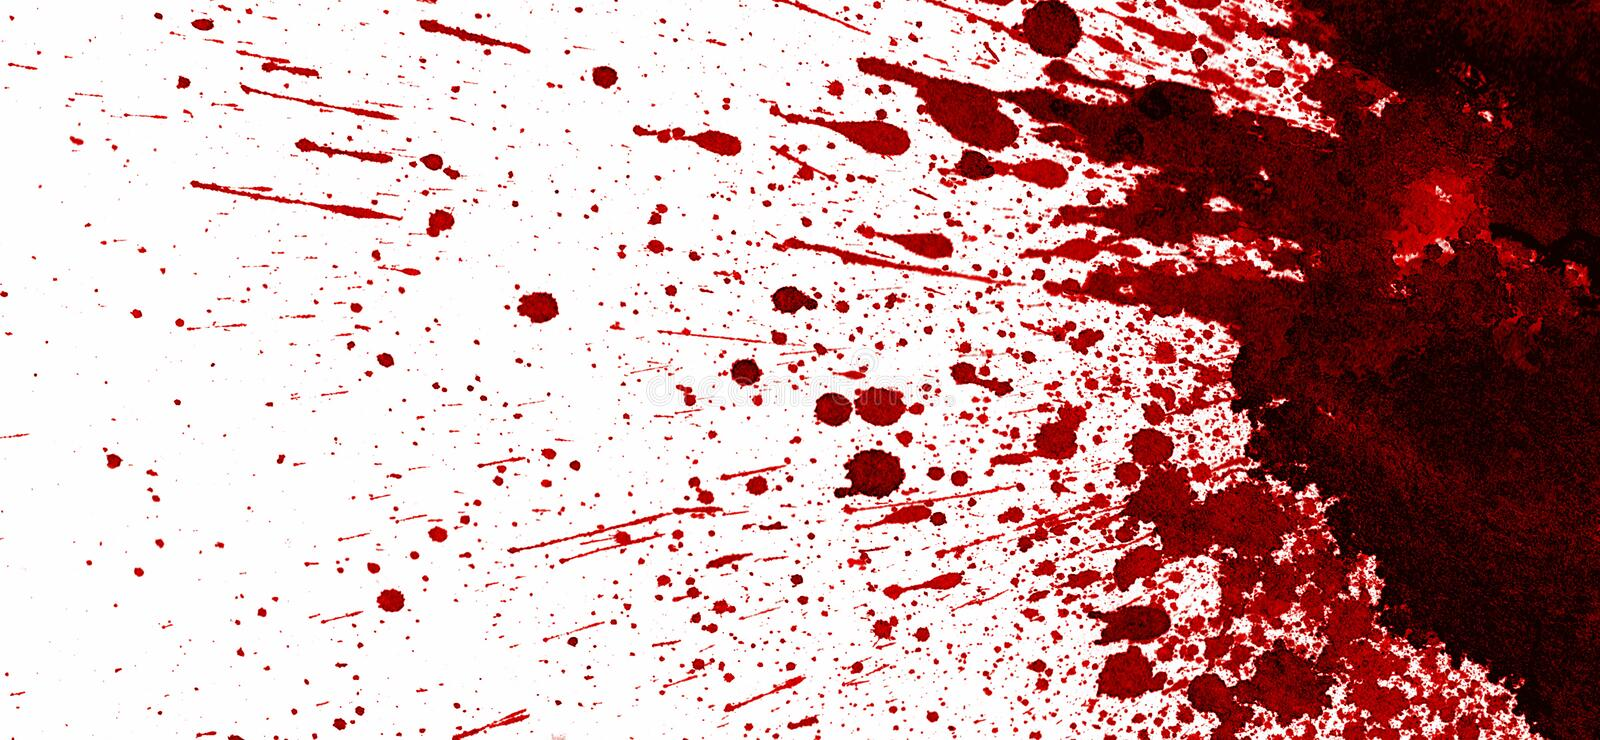 Red blood stain on white royalty free illustration